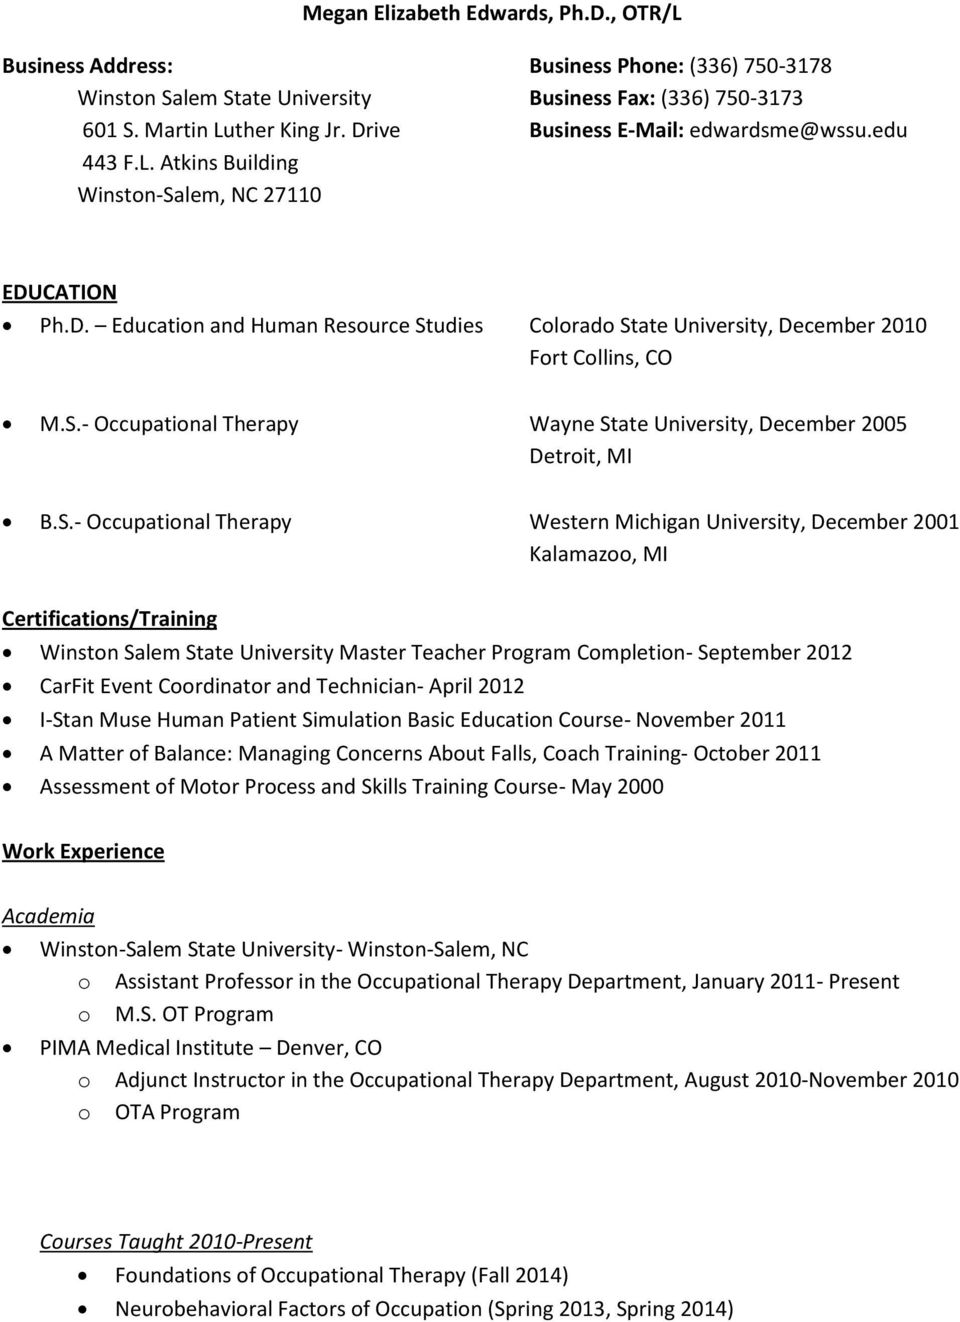 S.- Occupational Therapy Wayne State University, December 2005 Detroit, MI B.S.- Occupational Therapy Western Michigan University, December 2001 Kalamazoo, MI Certifications/Training Winston Salem